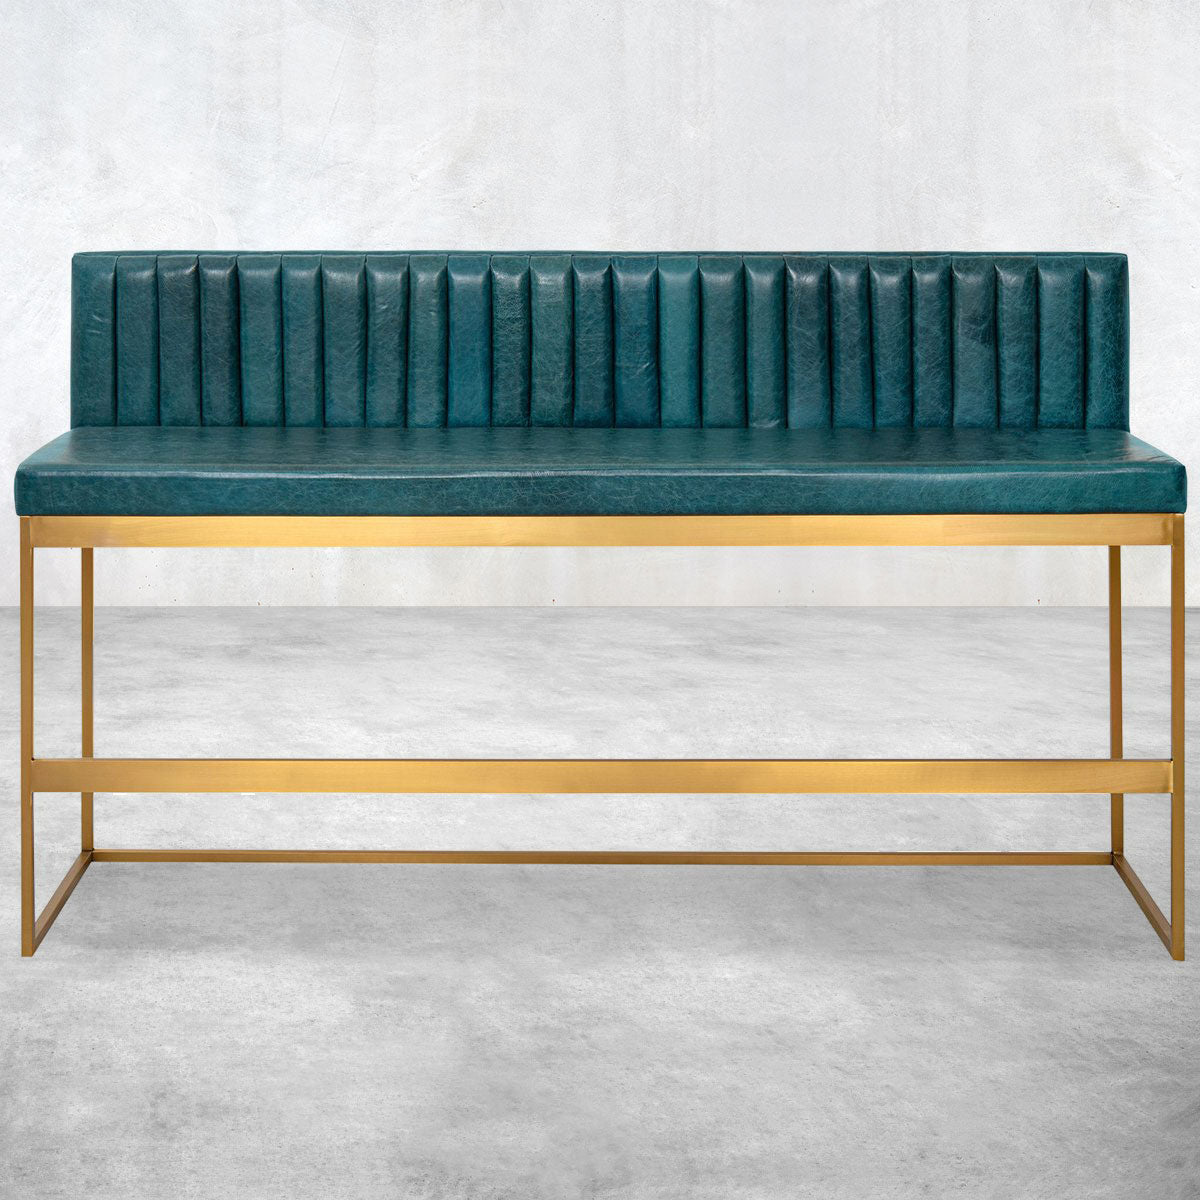 007 Bar Height Bench with Channel Tufting